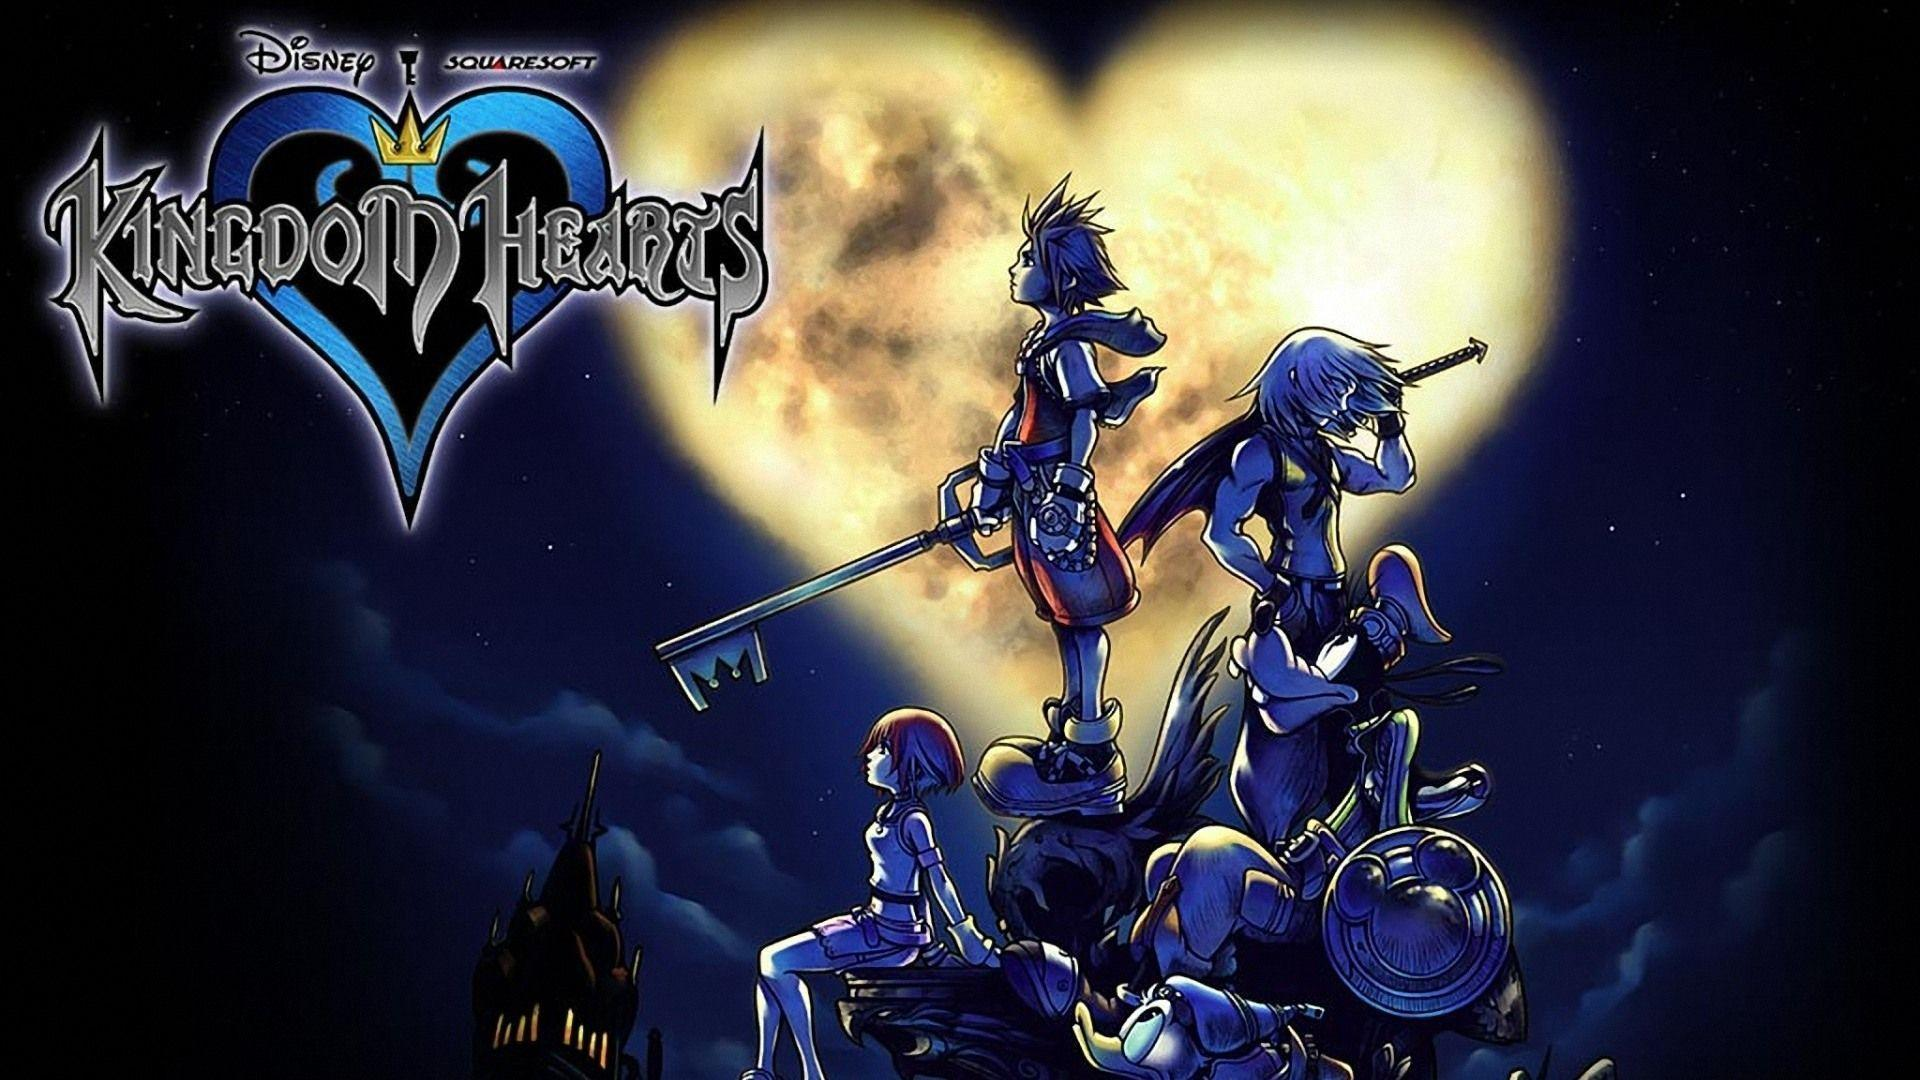 Kingdom Hearts Video Game New Wallpapers, Backgrounds